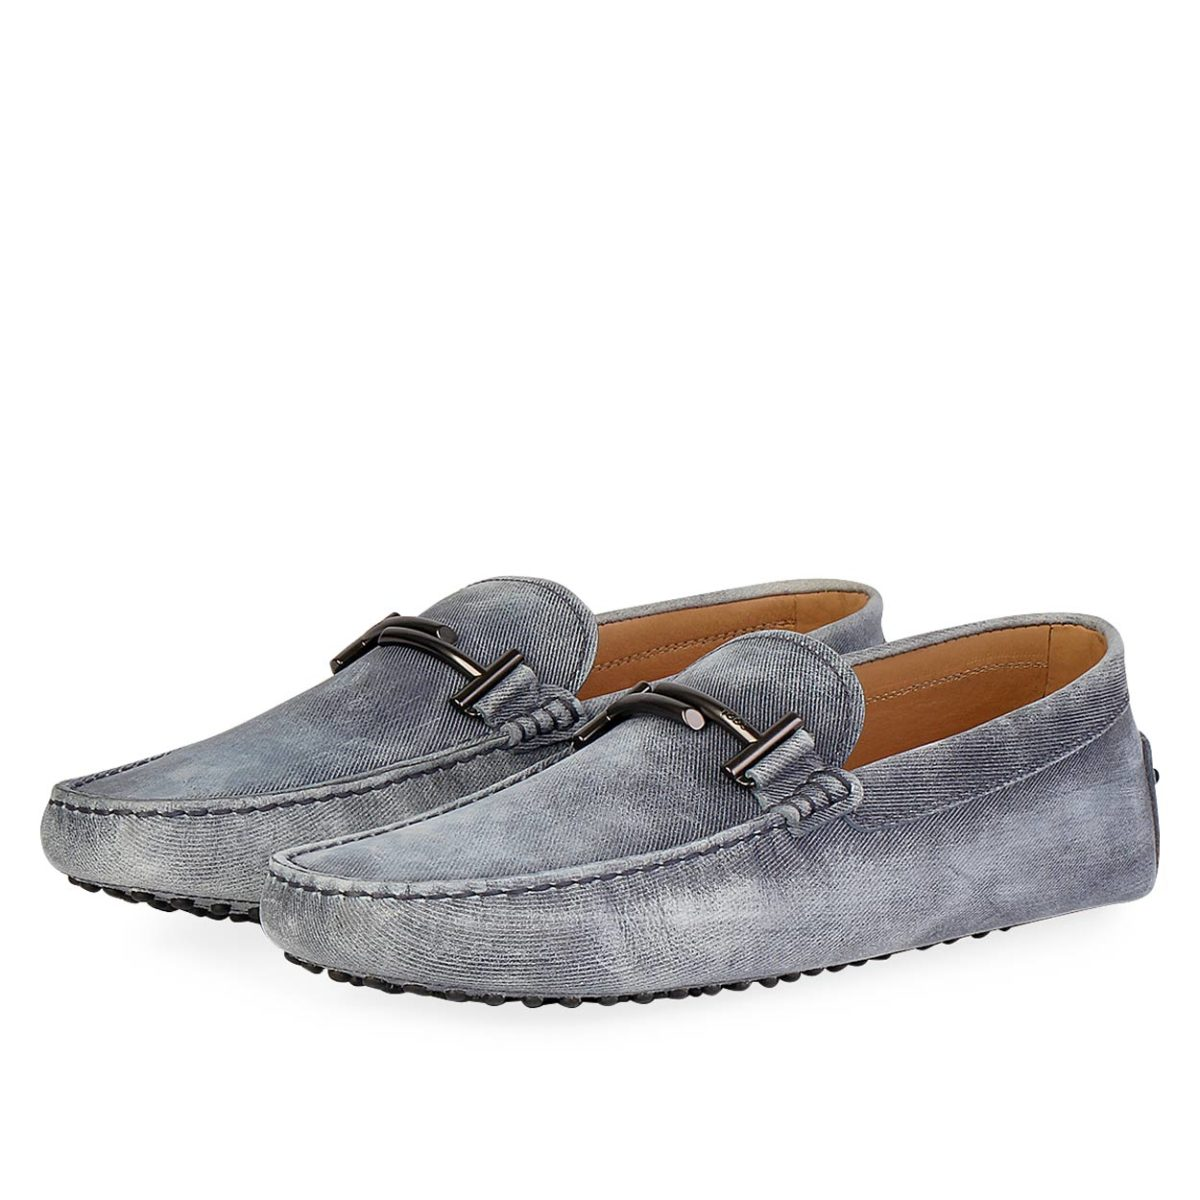 9ac12c1aa33b1 TOD'S Men's Double T City Gommino Loafers Denim - S: 42.5 (8.5) | Luxity